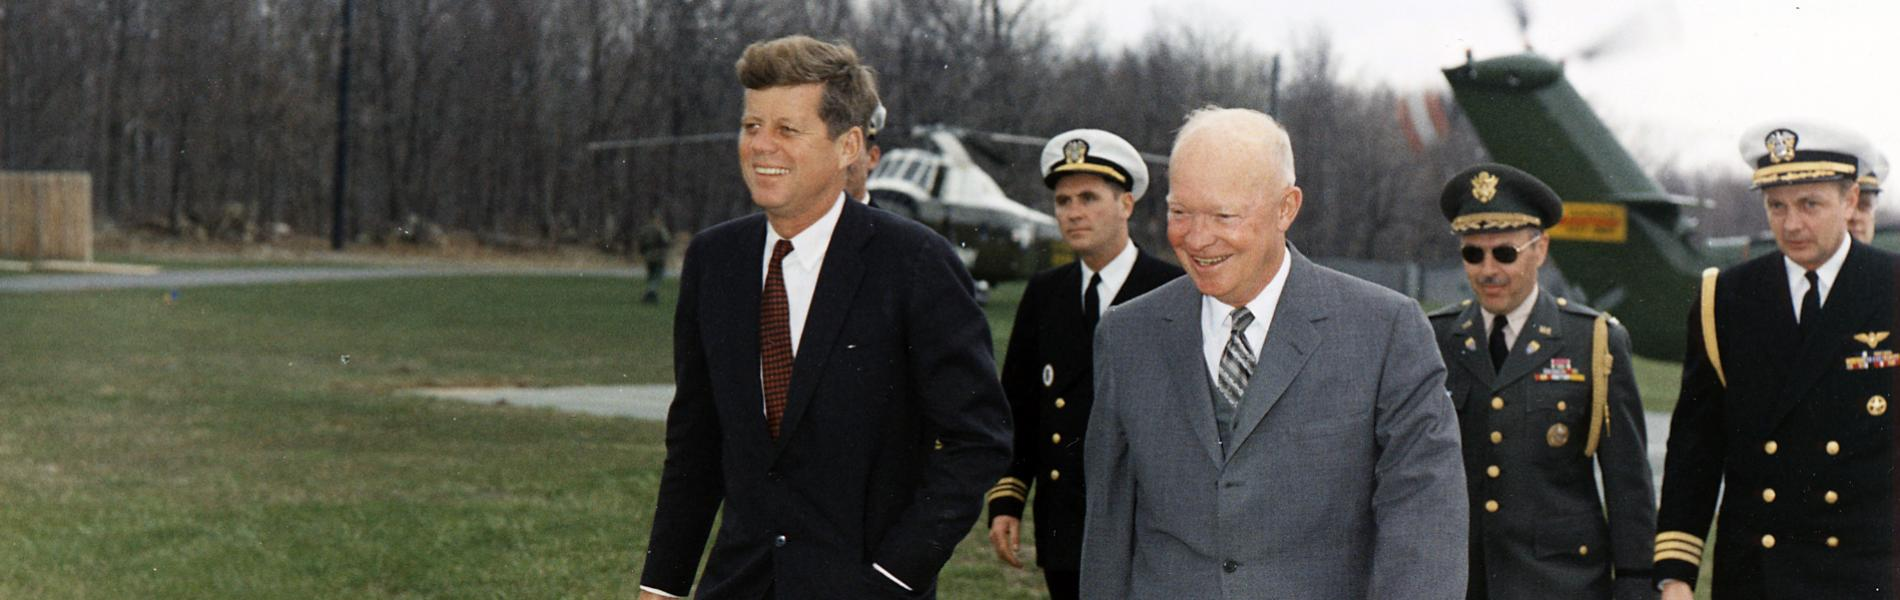 Meeting with President Eisenhower, President Kennedy, military aides, Camp David, MD